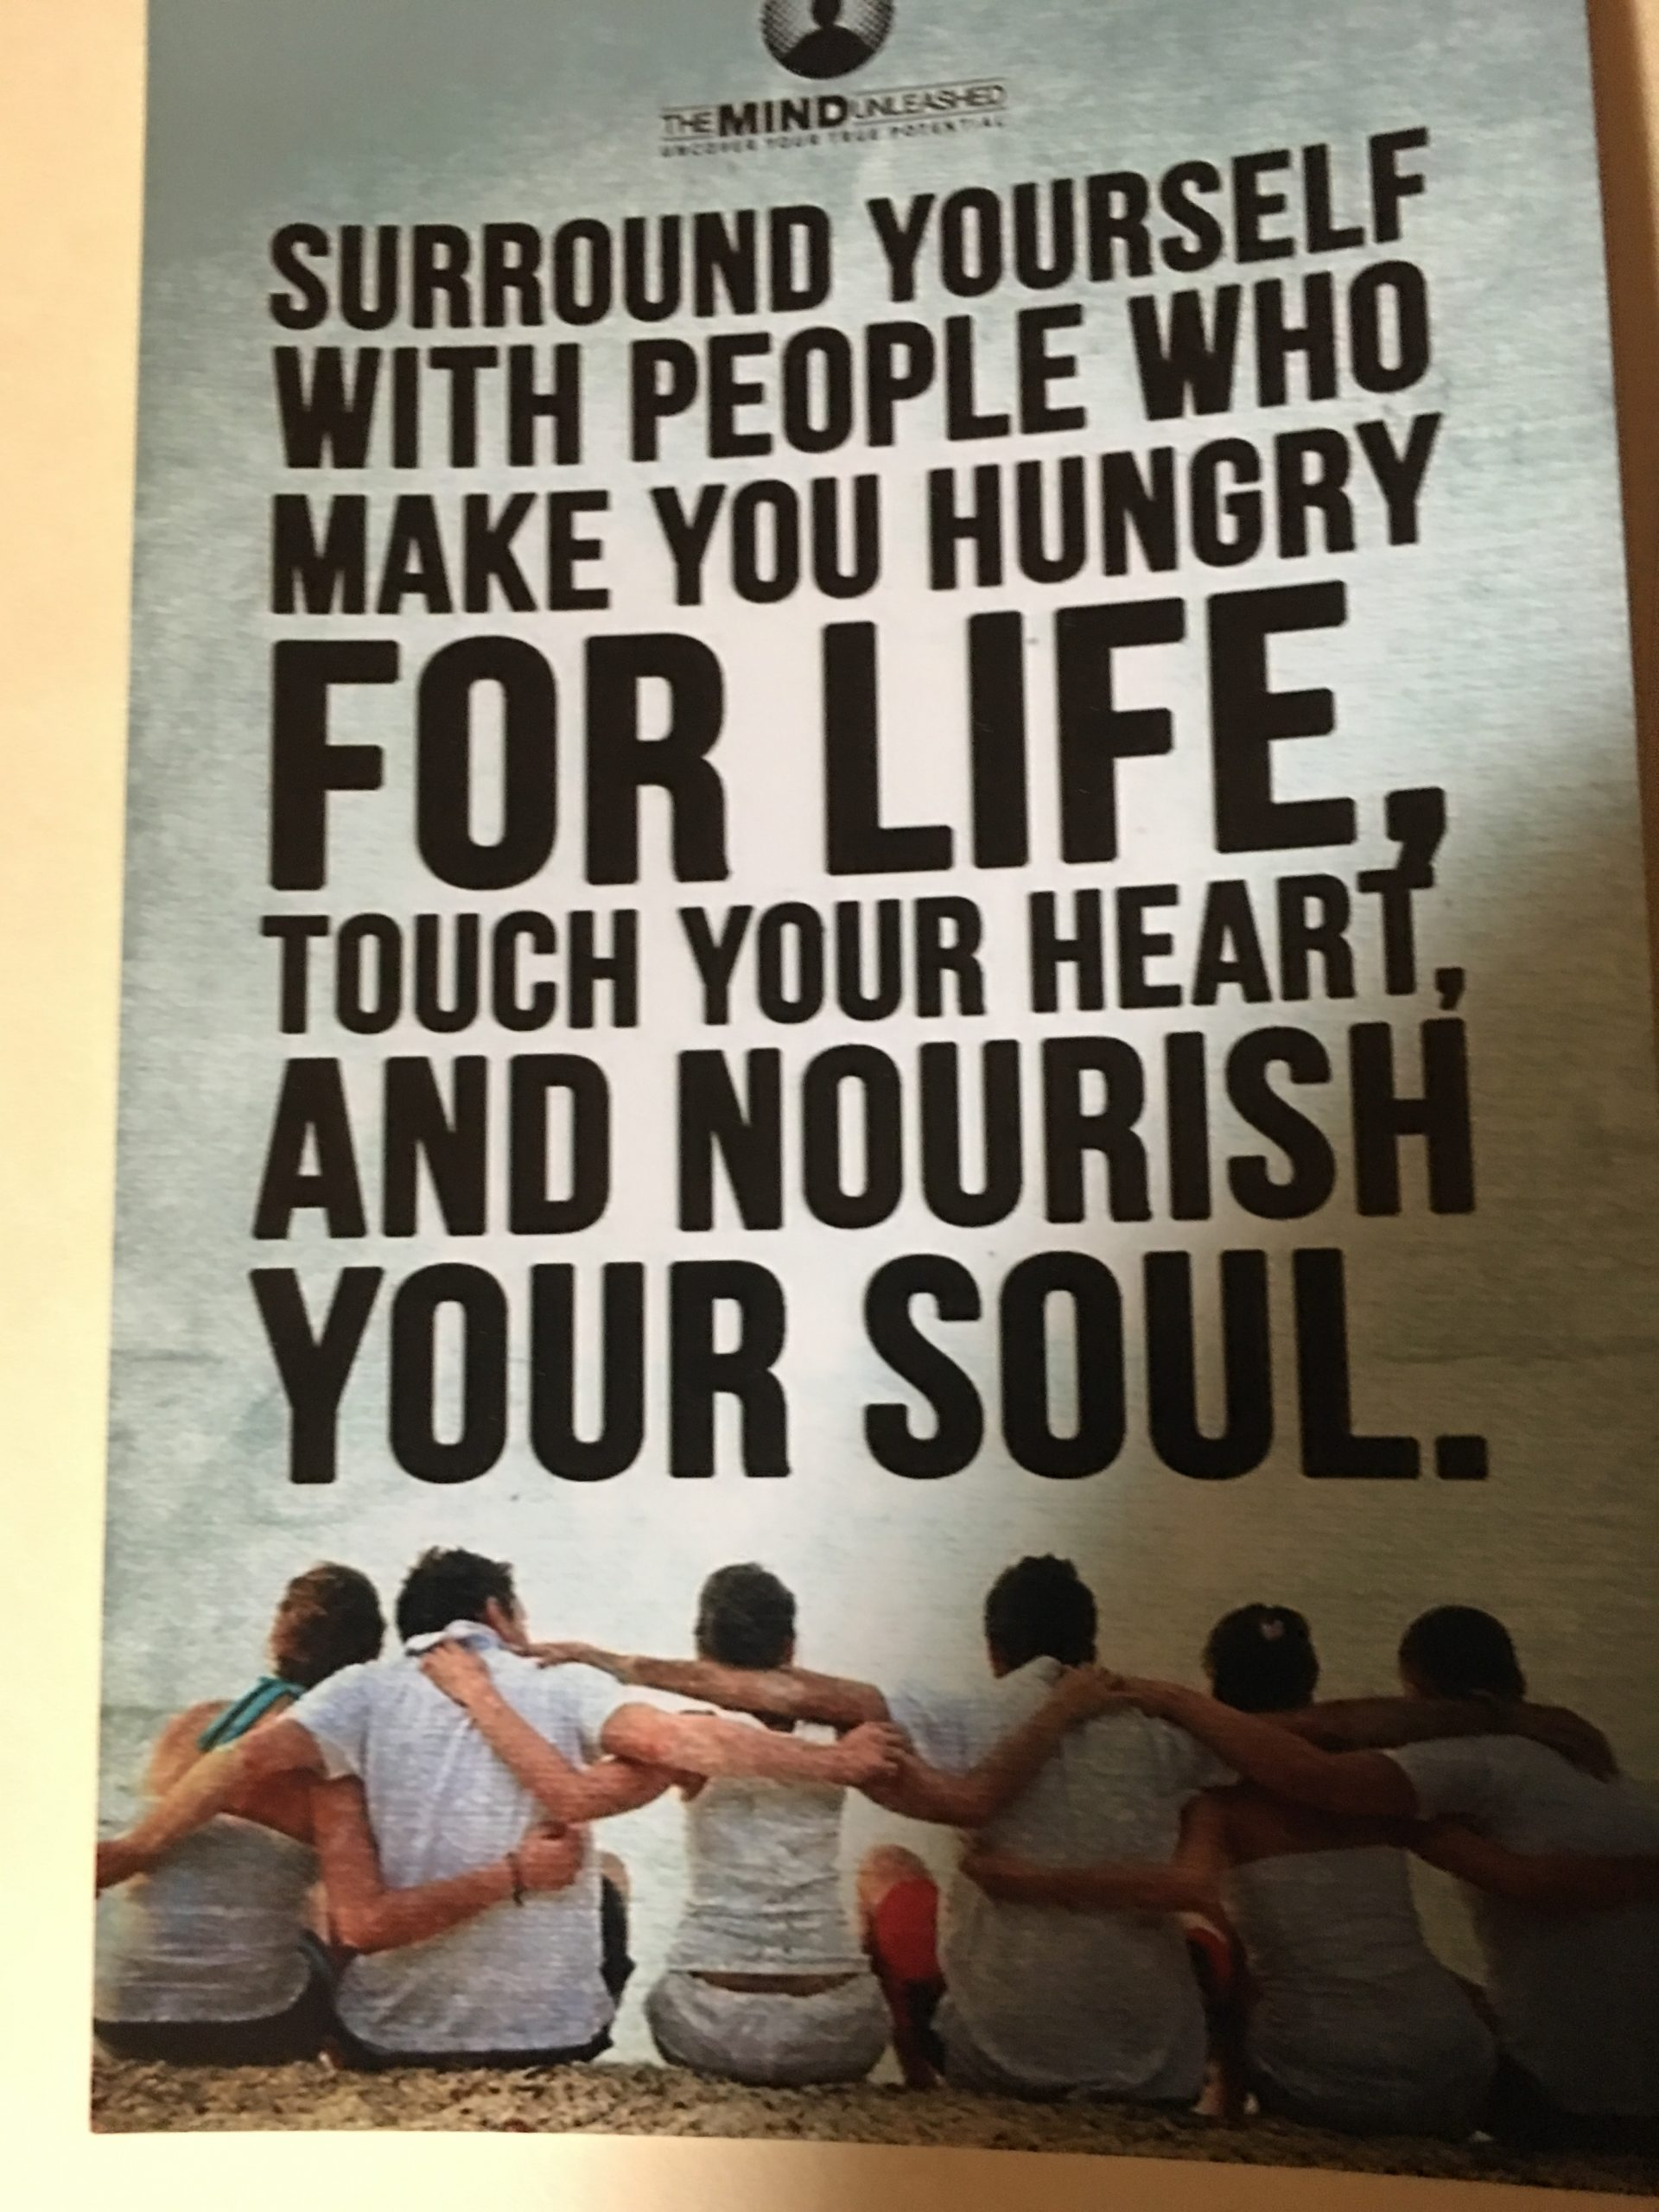 The people around you!